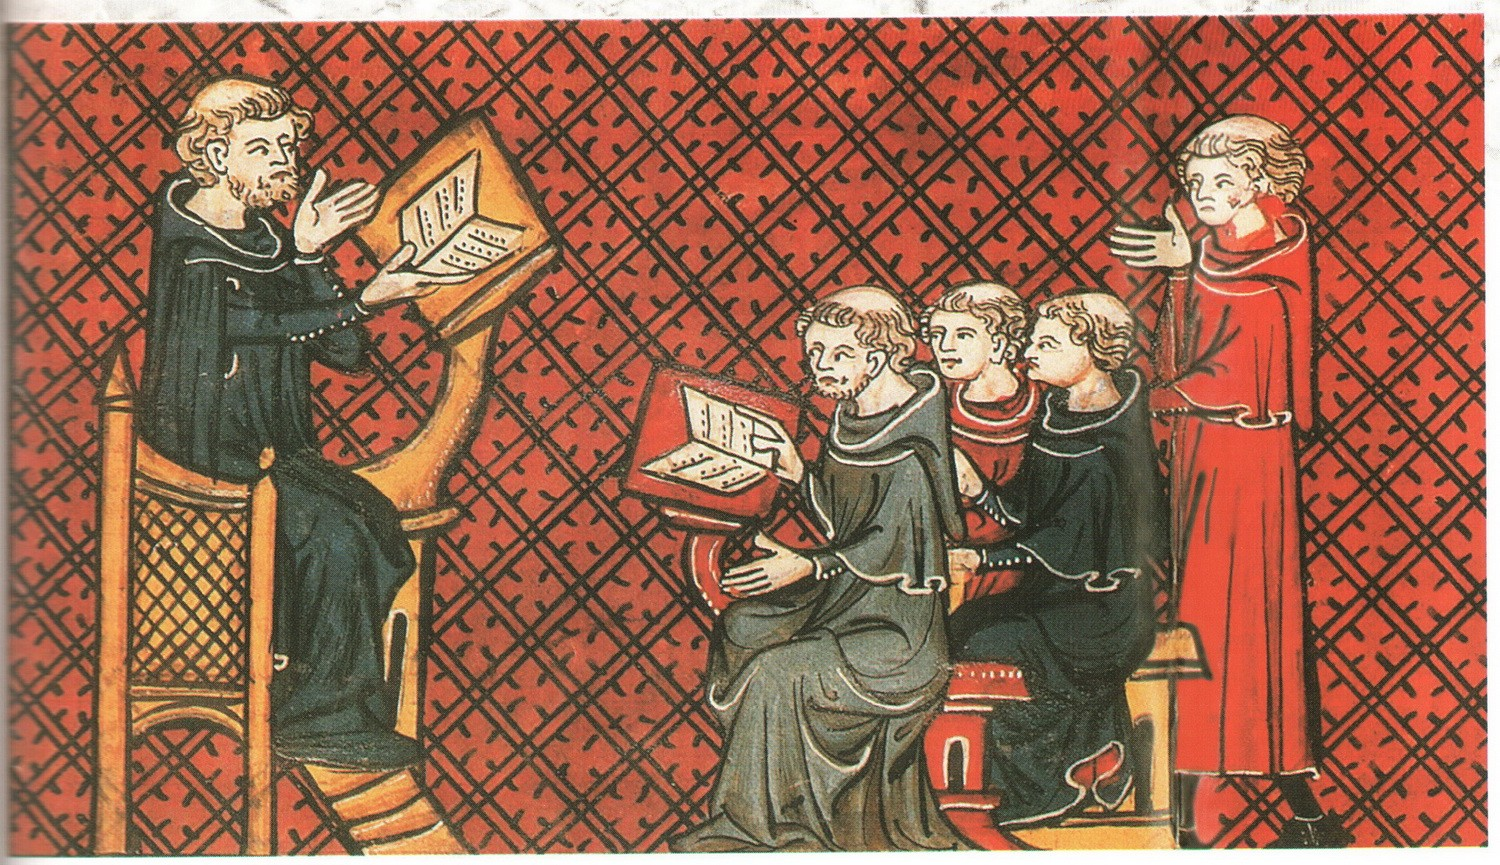 christian monasticism in the middle ages - HD1470×817